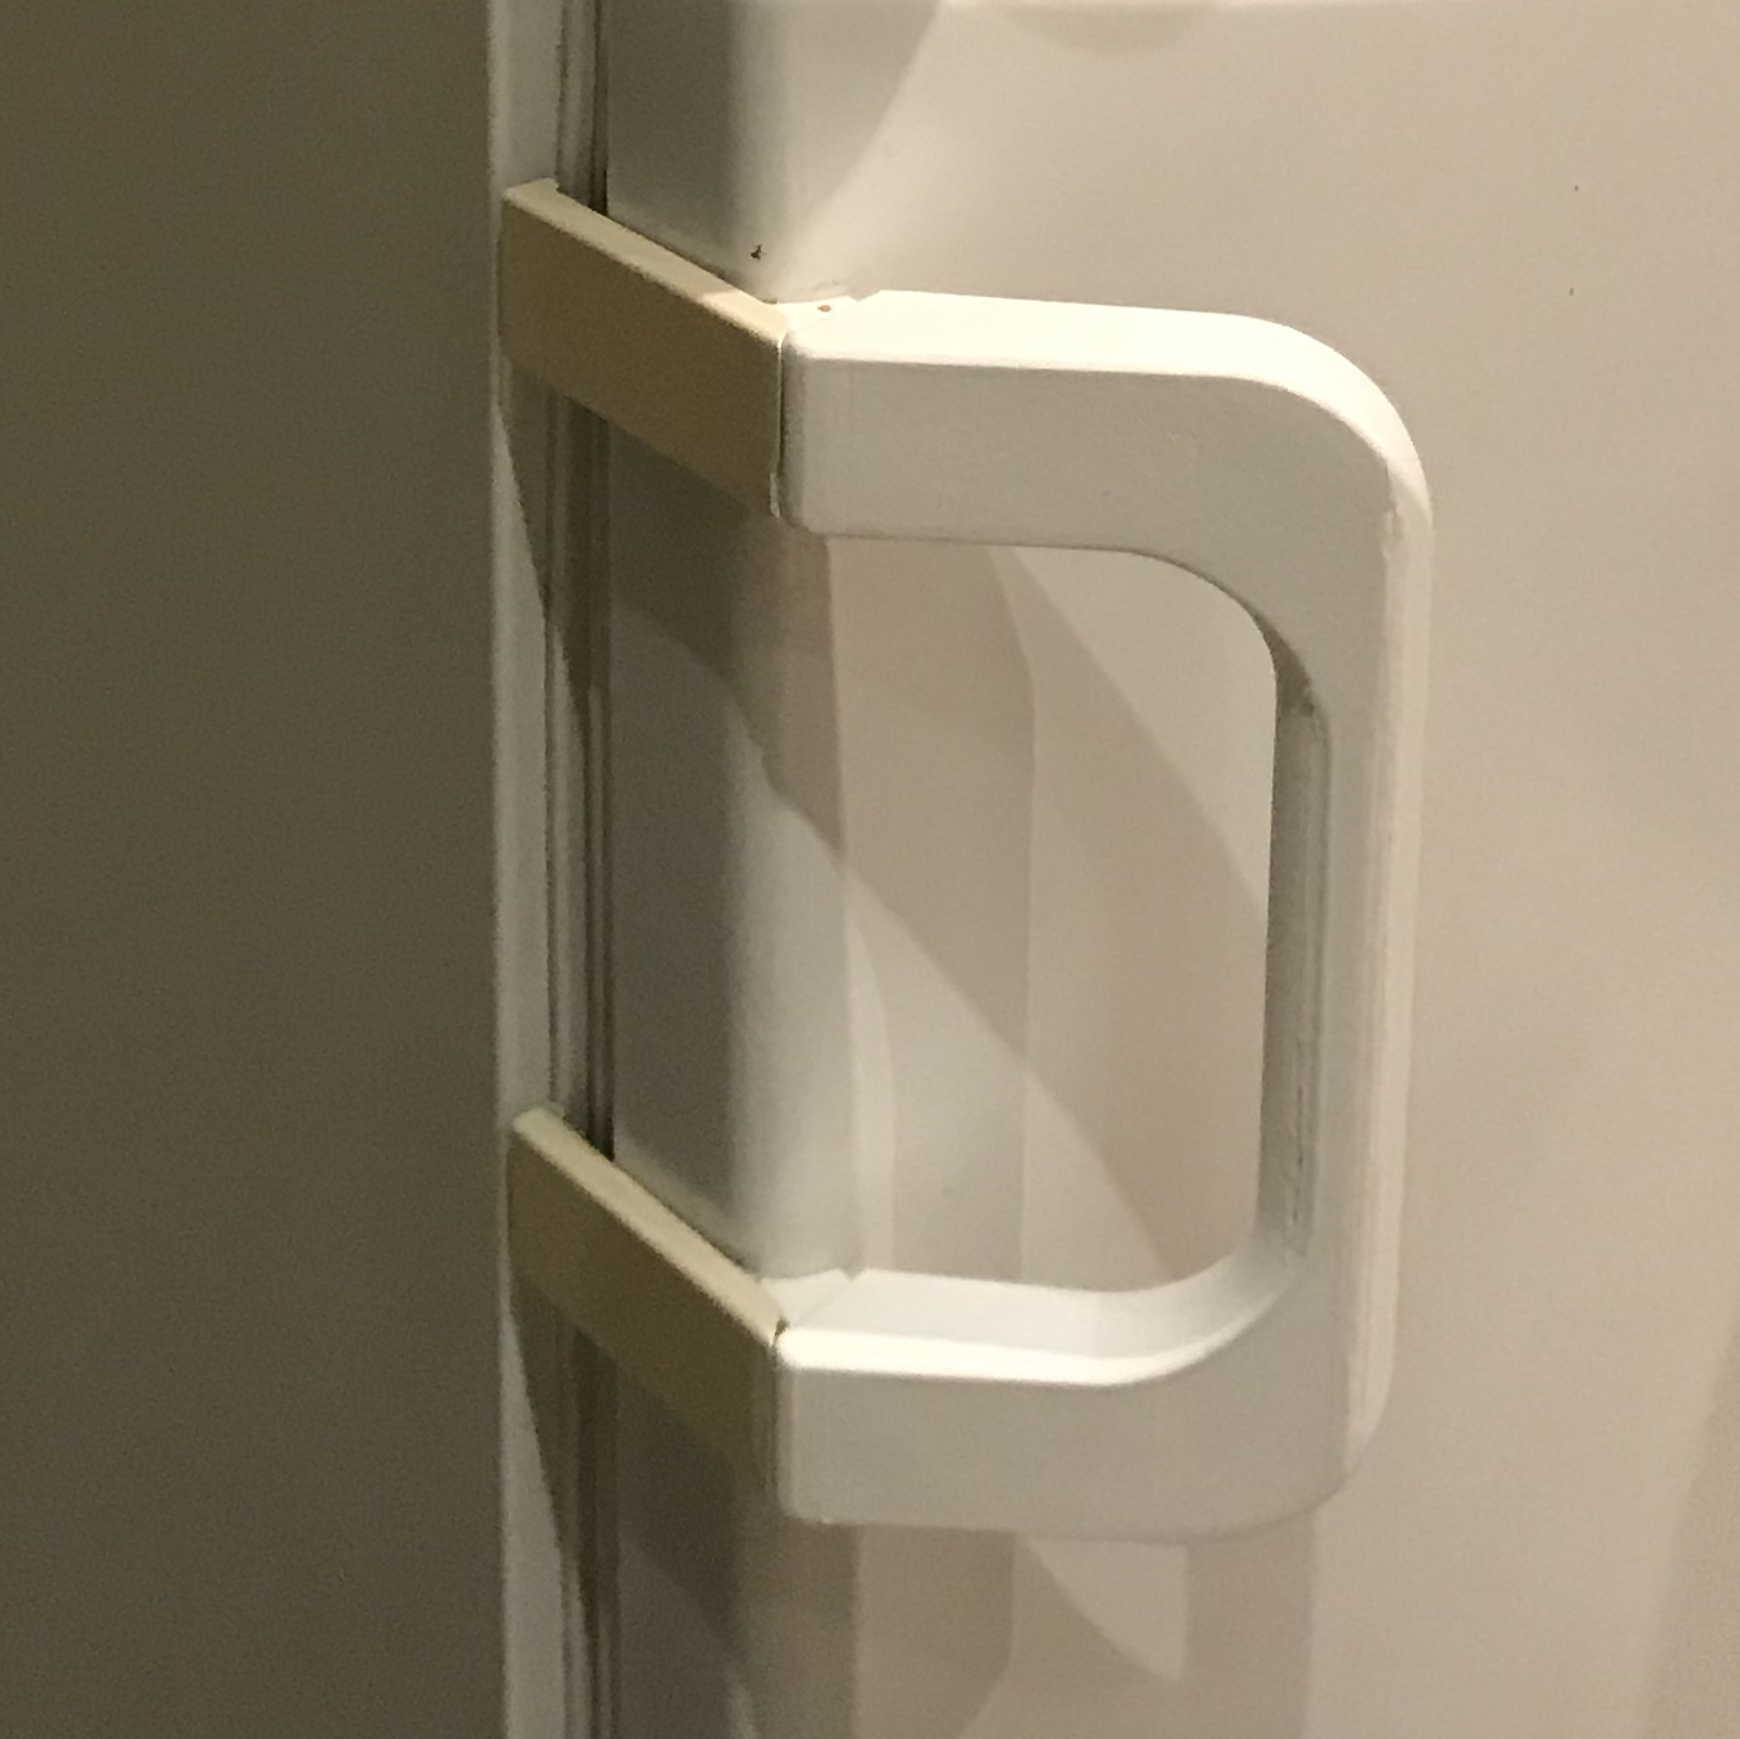 PoigneeMieleReal.png Download free STL file MIELE fridge handle replacement part • Model to 3D print, uhgues